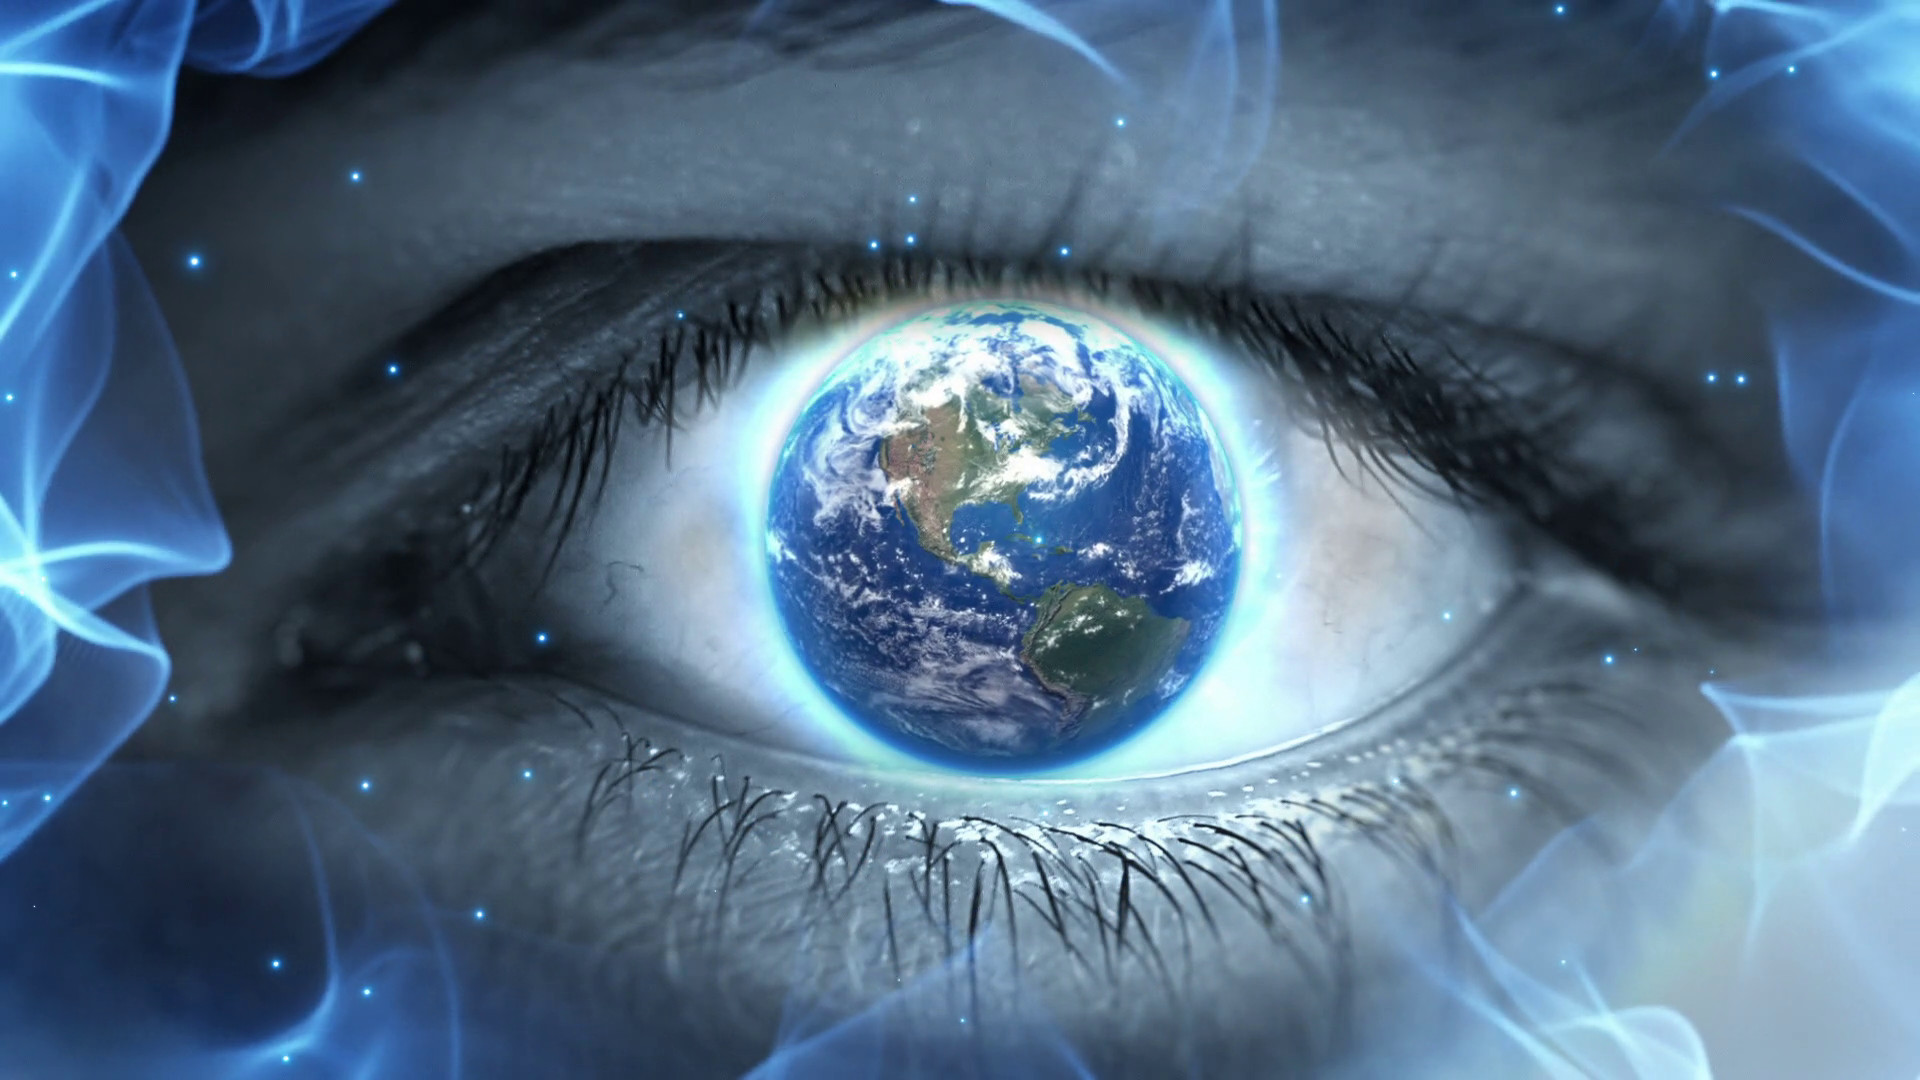 1920x1080 Planet Earth in the Eye Iris Weird Fantasy Science Fiction Seamless Looping  Motion Background 1080p Full HD Motion Background - Storyblocks Video